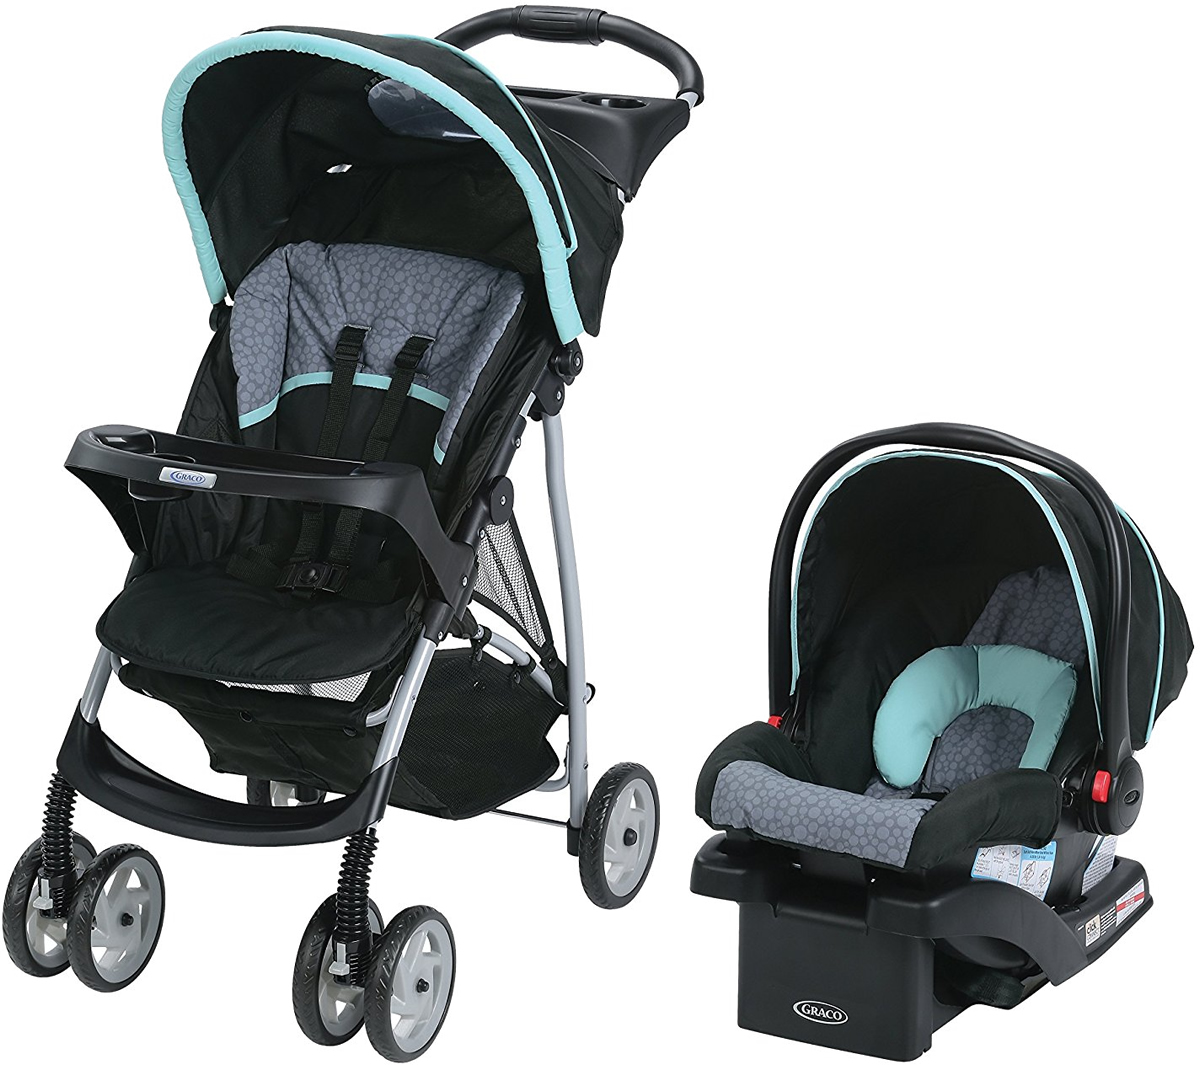 Graco LiteRider Travel System - Sully